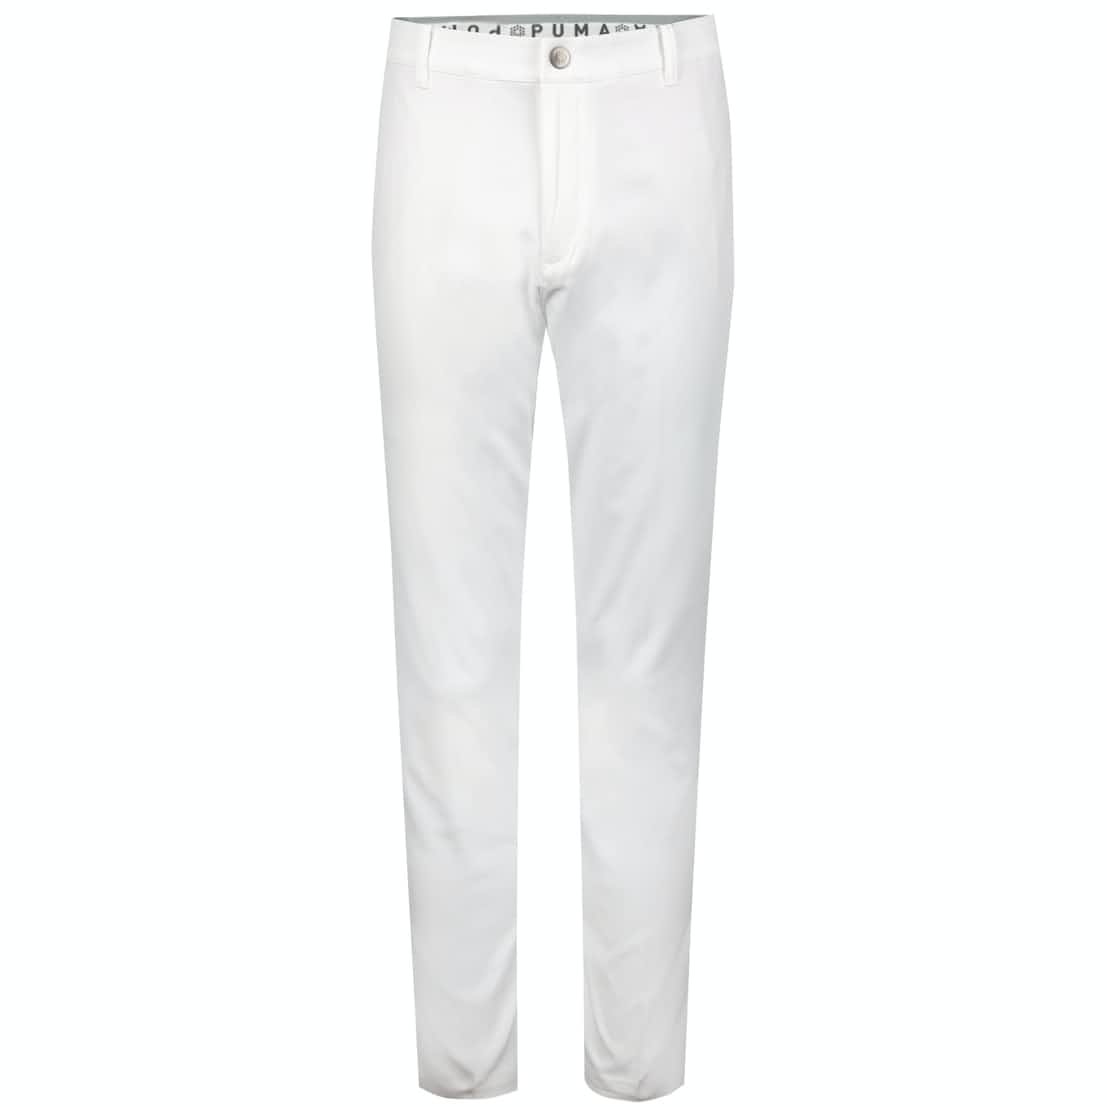 Jackpot Tailored Pants Bright White - 2020